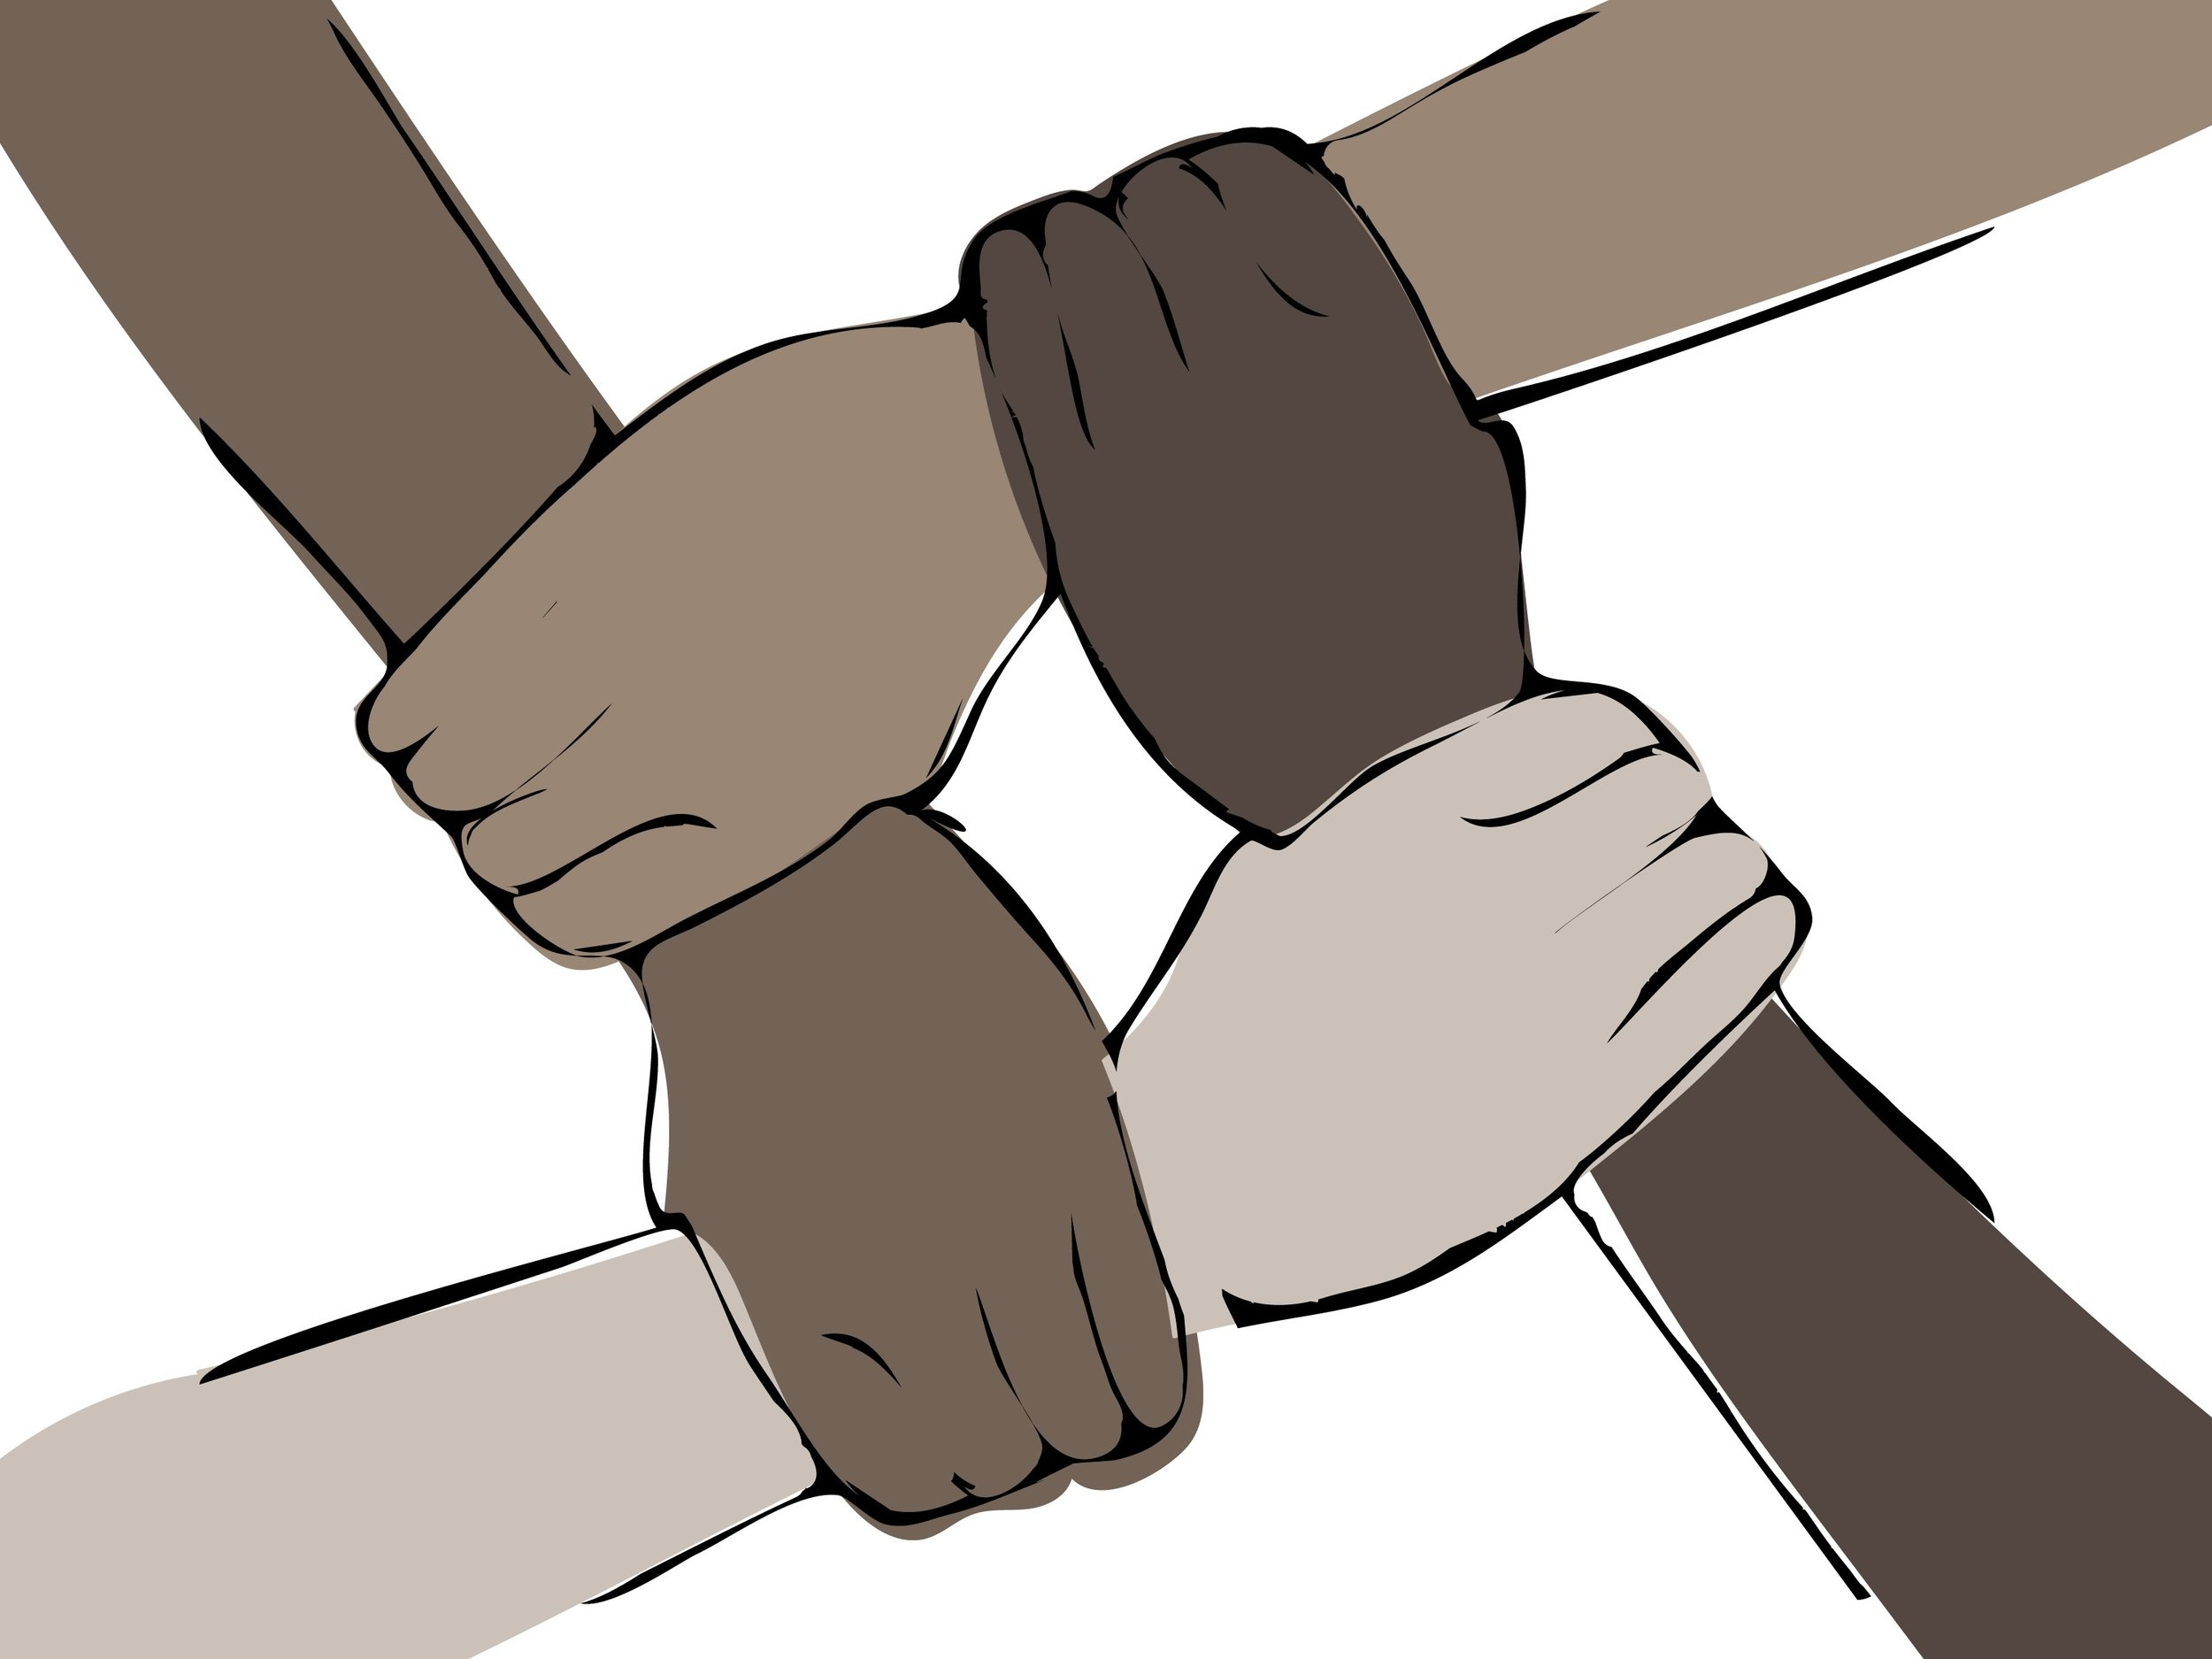 8_hands together.jpg